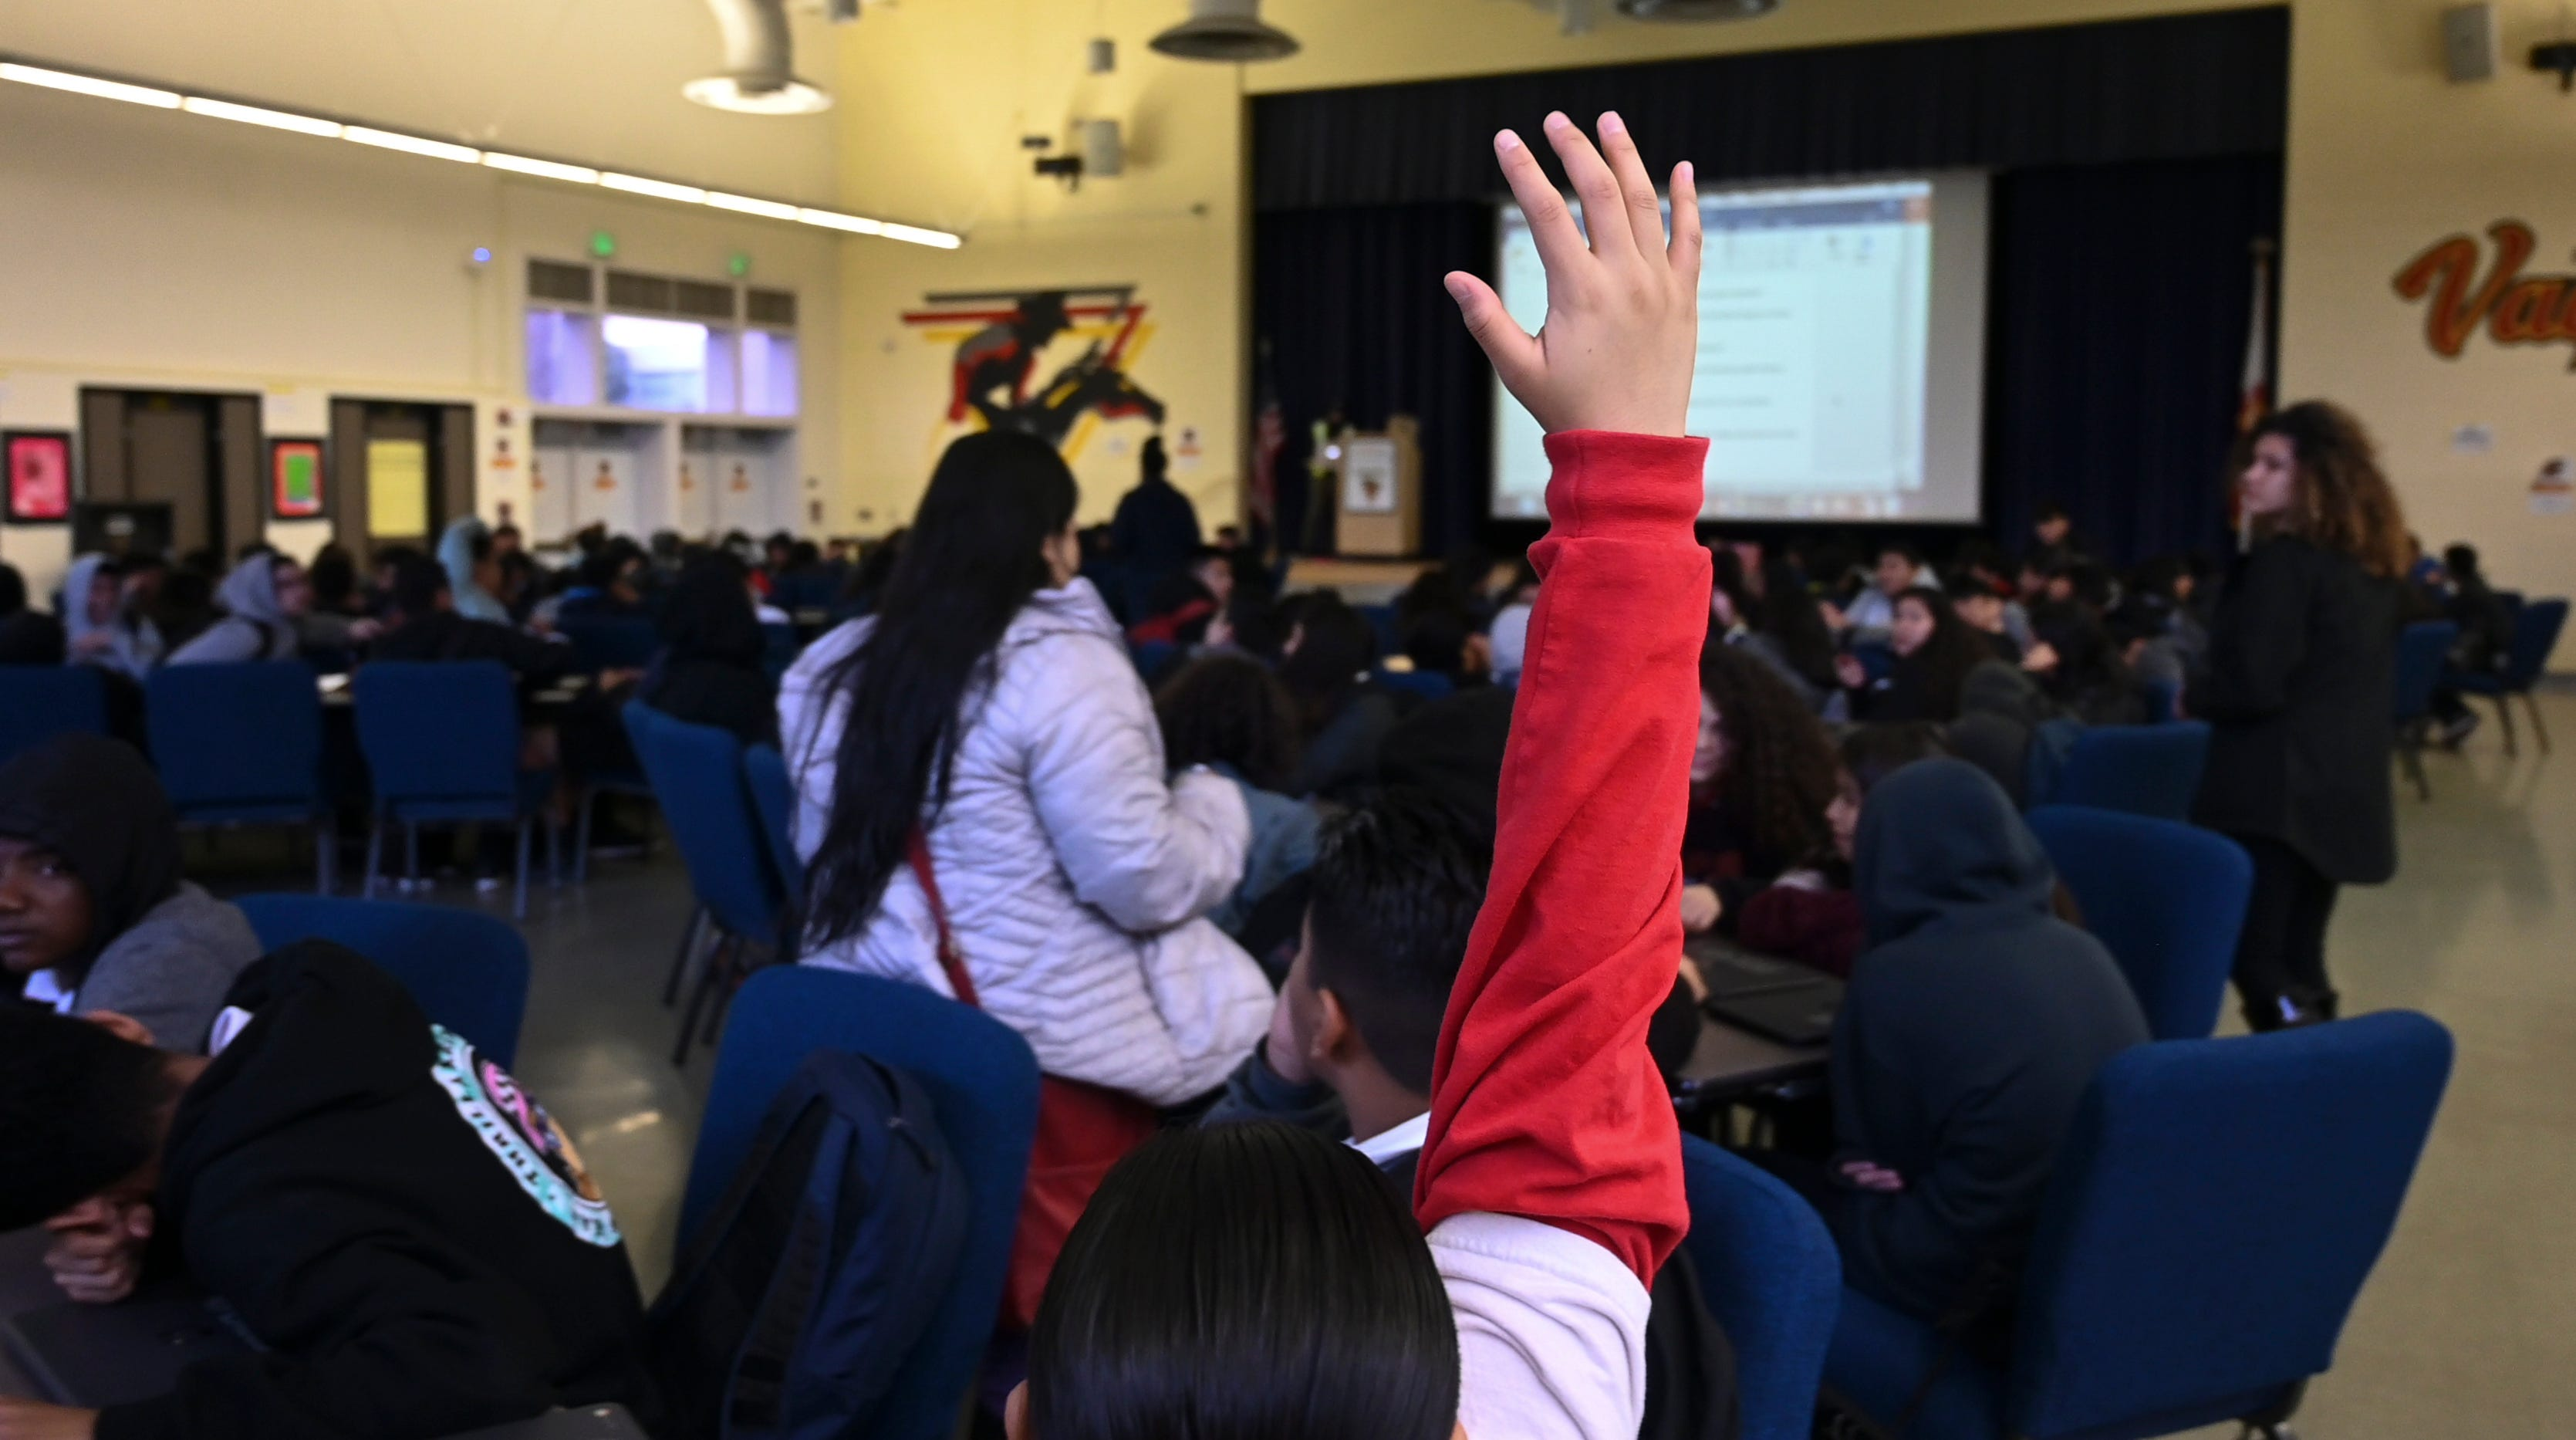 A student raises her hand to answer a question in a class held in the multipurpose room at Vista Middle School in Los Angeles. The 30,000 members of United Teachers Los Angeles went on strike Monday.